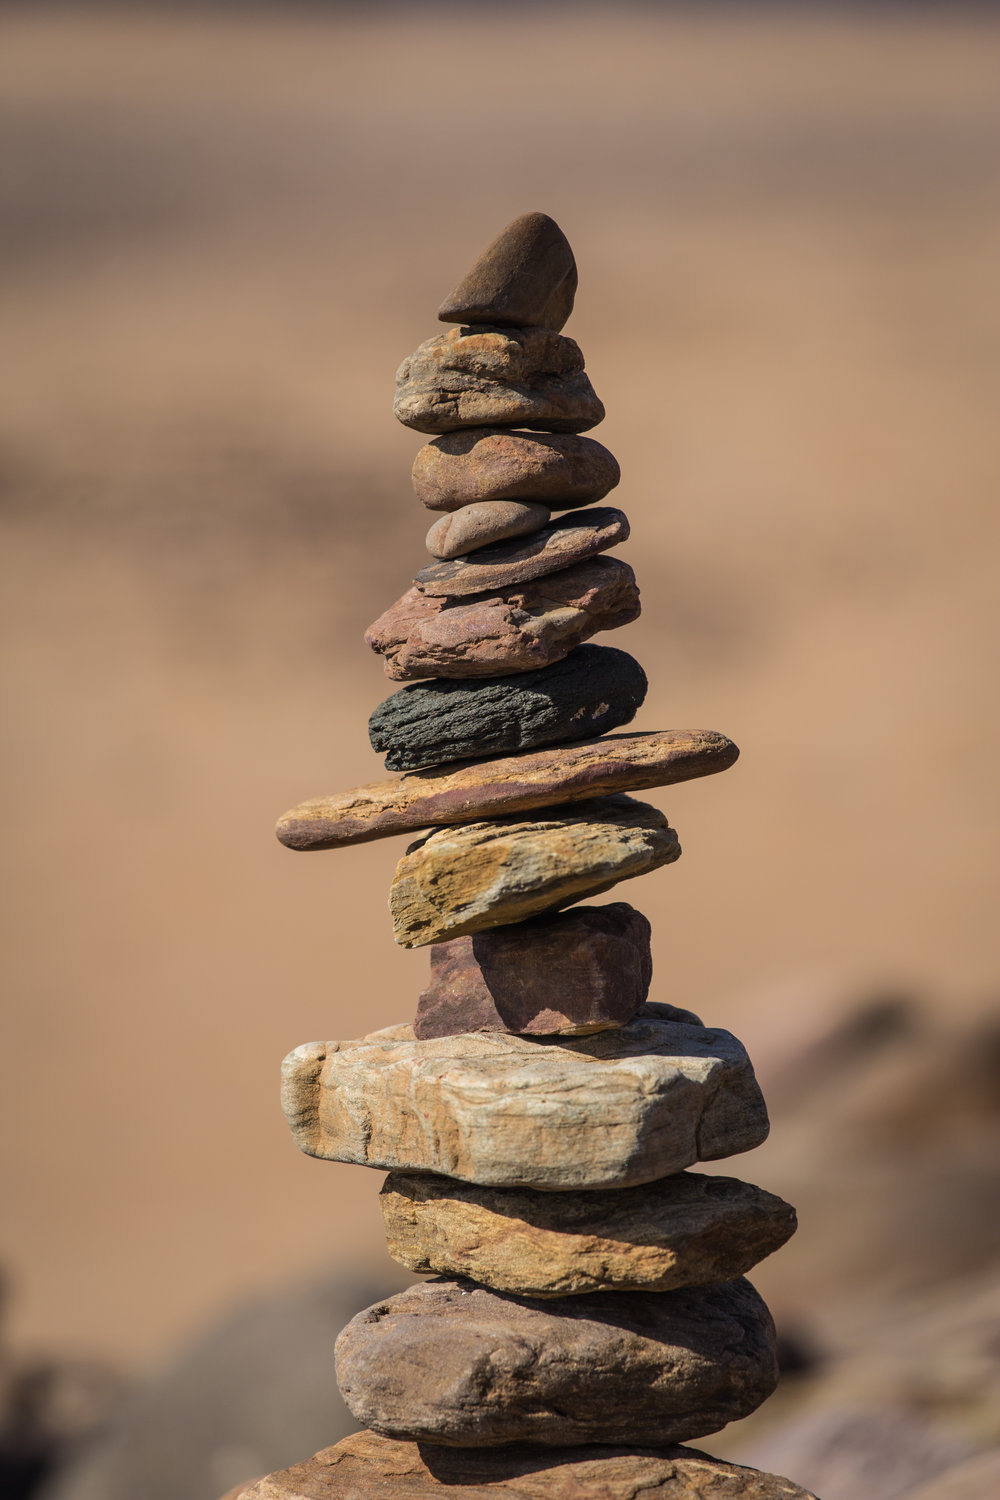 Tower of rocks on beach